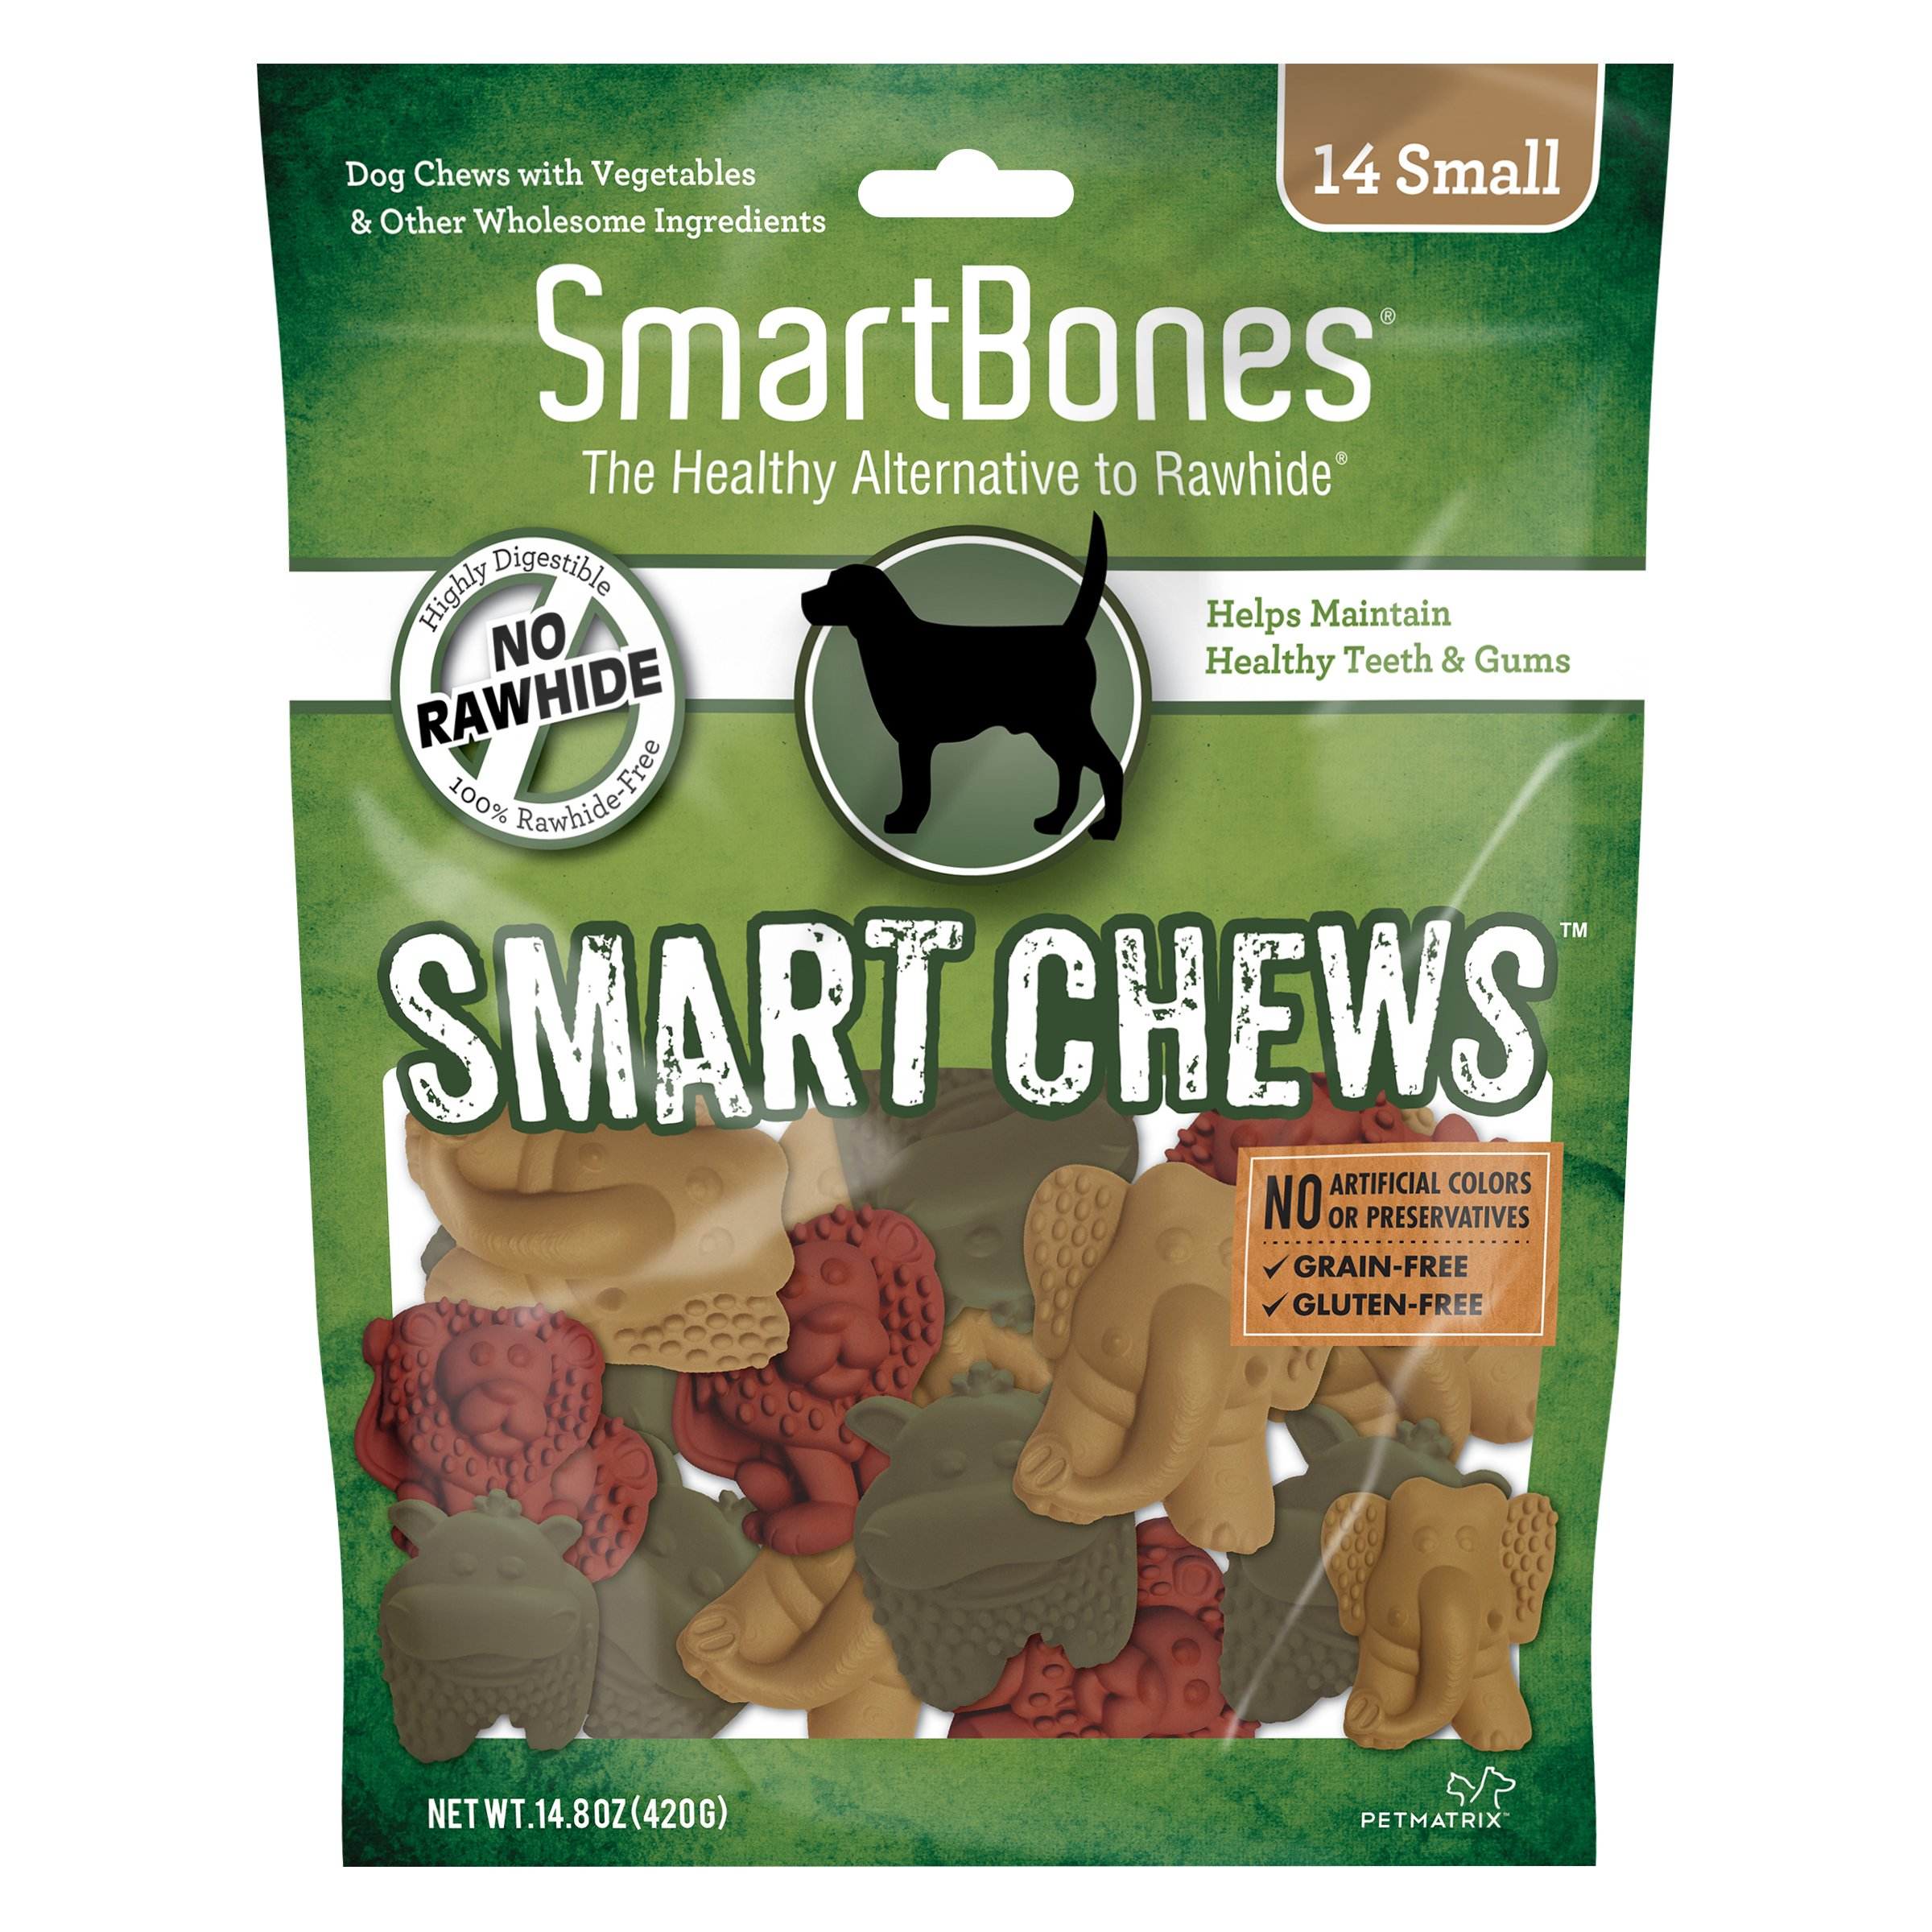 SmartBones Smart Chews Safari Chews for Dogs, Rawhide-Free